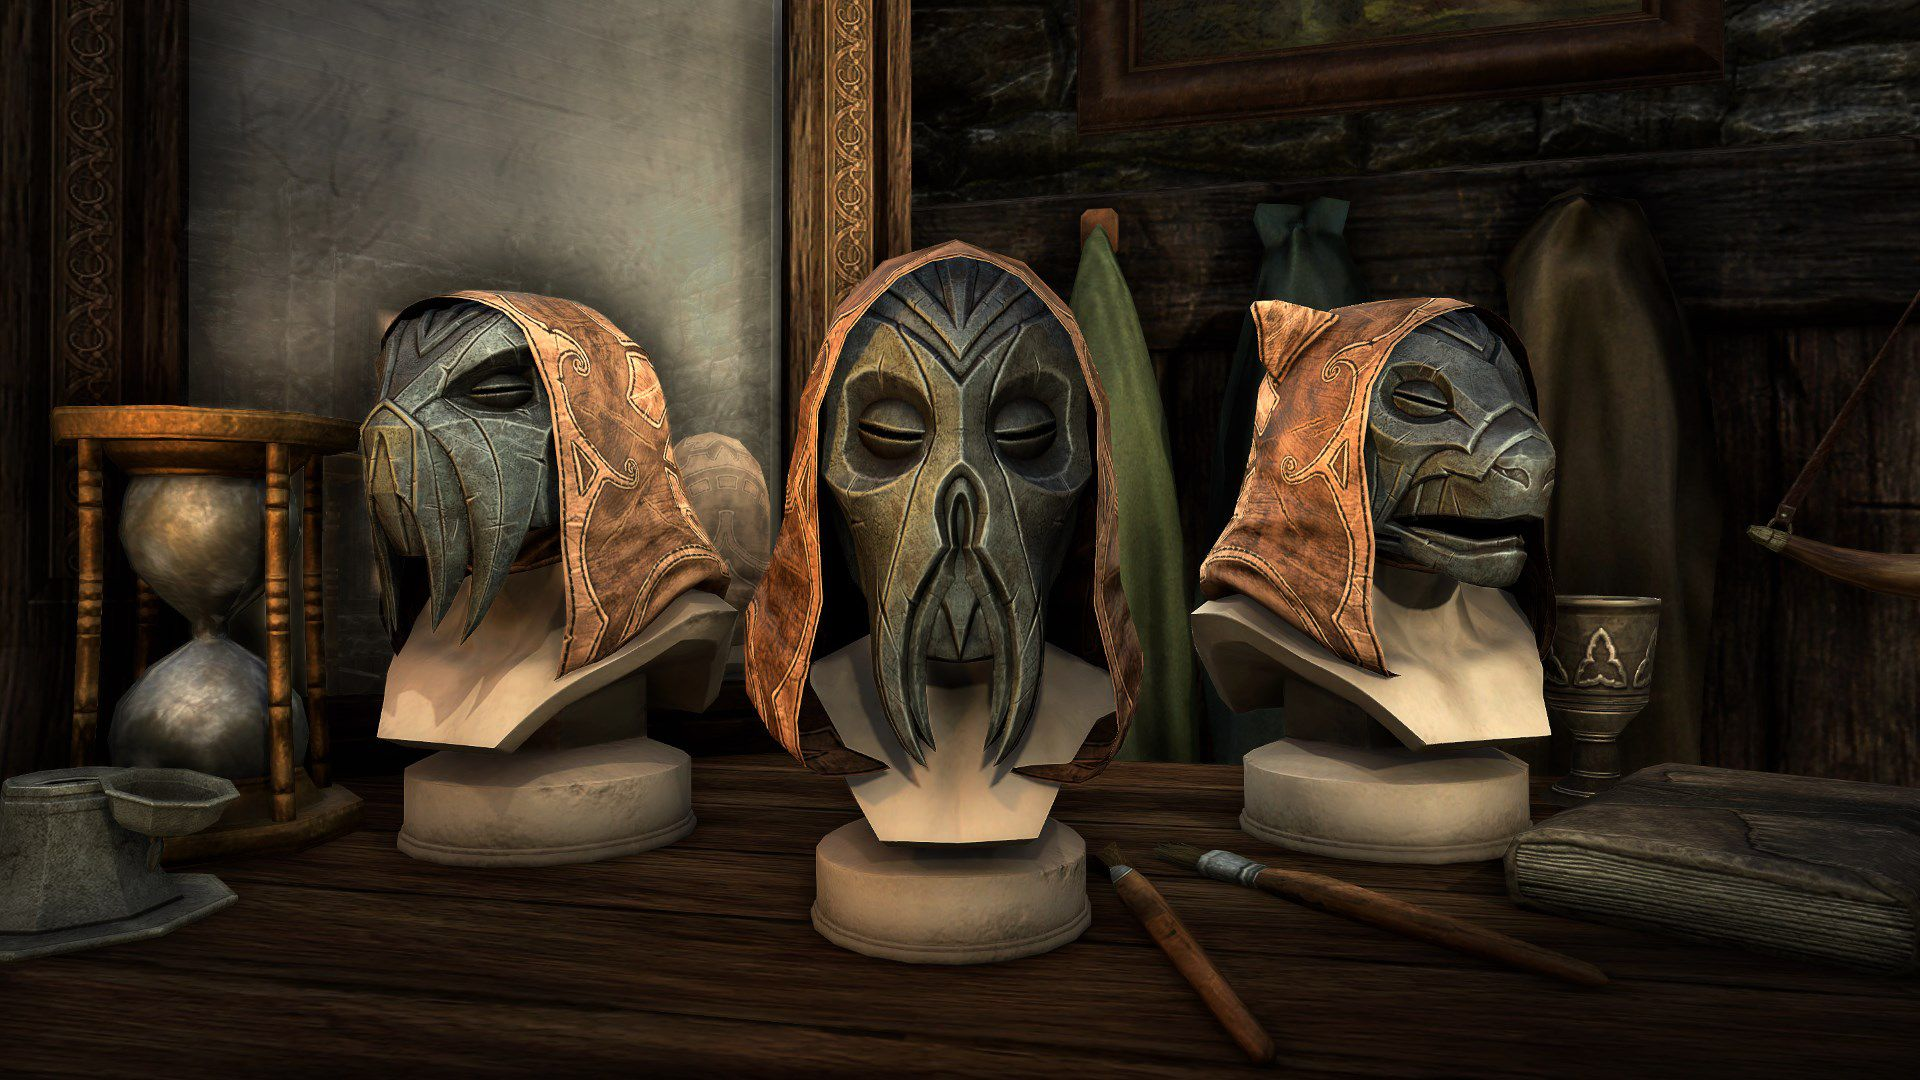 https://altarofgaming.com/wp-content/uploads/2018/03/the-elder-scrolls-online-scalecaller-crown-crate-apex-hat-tusked-dragon-priest-mask.jpg